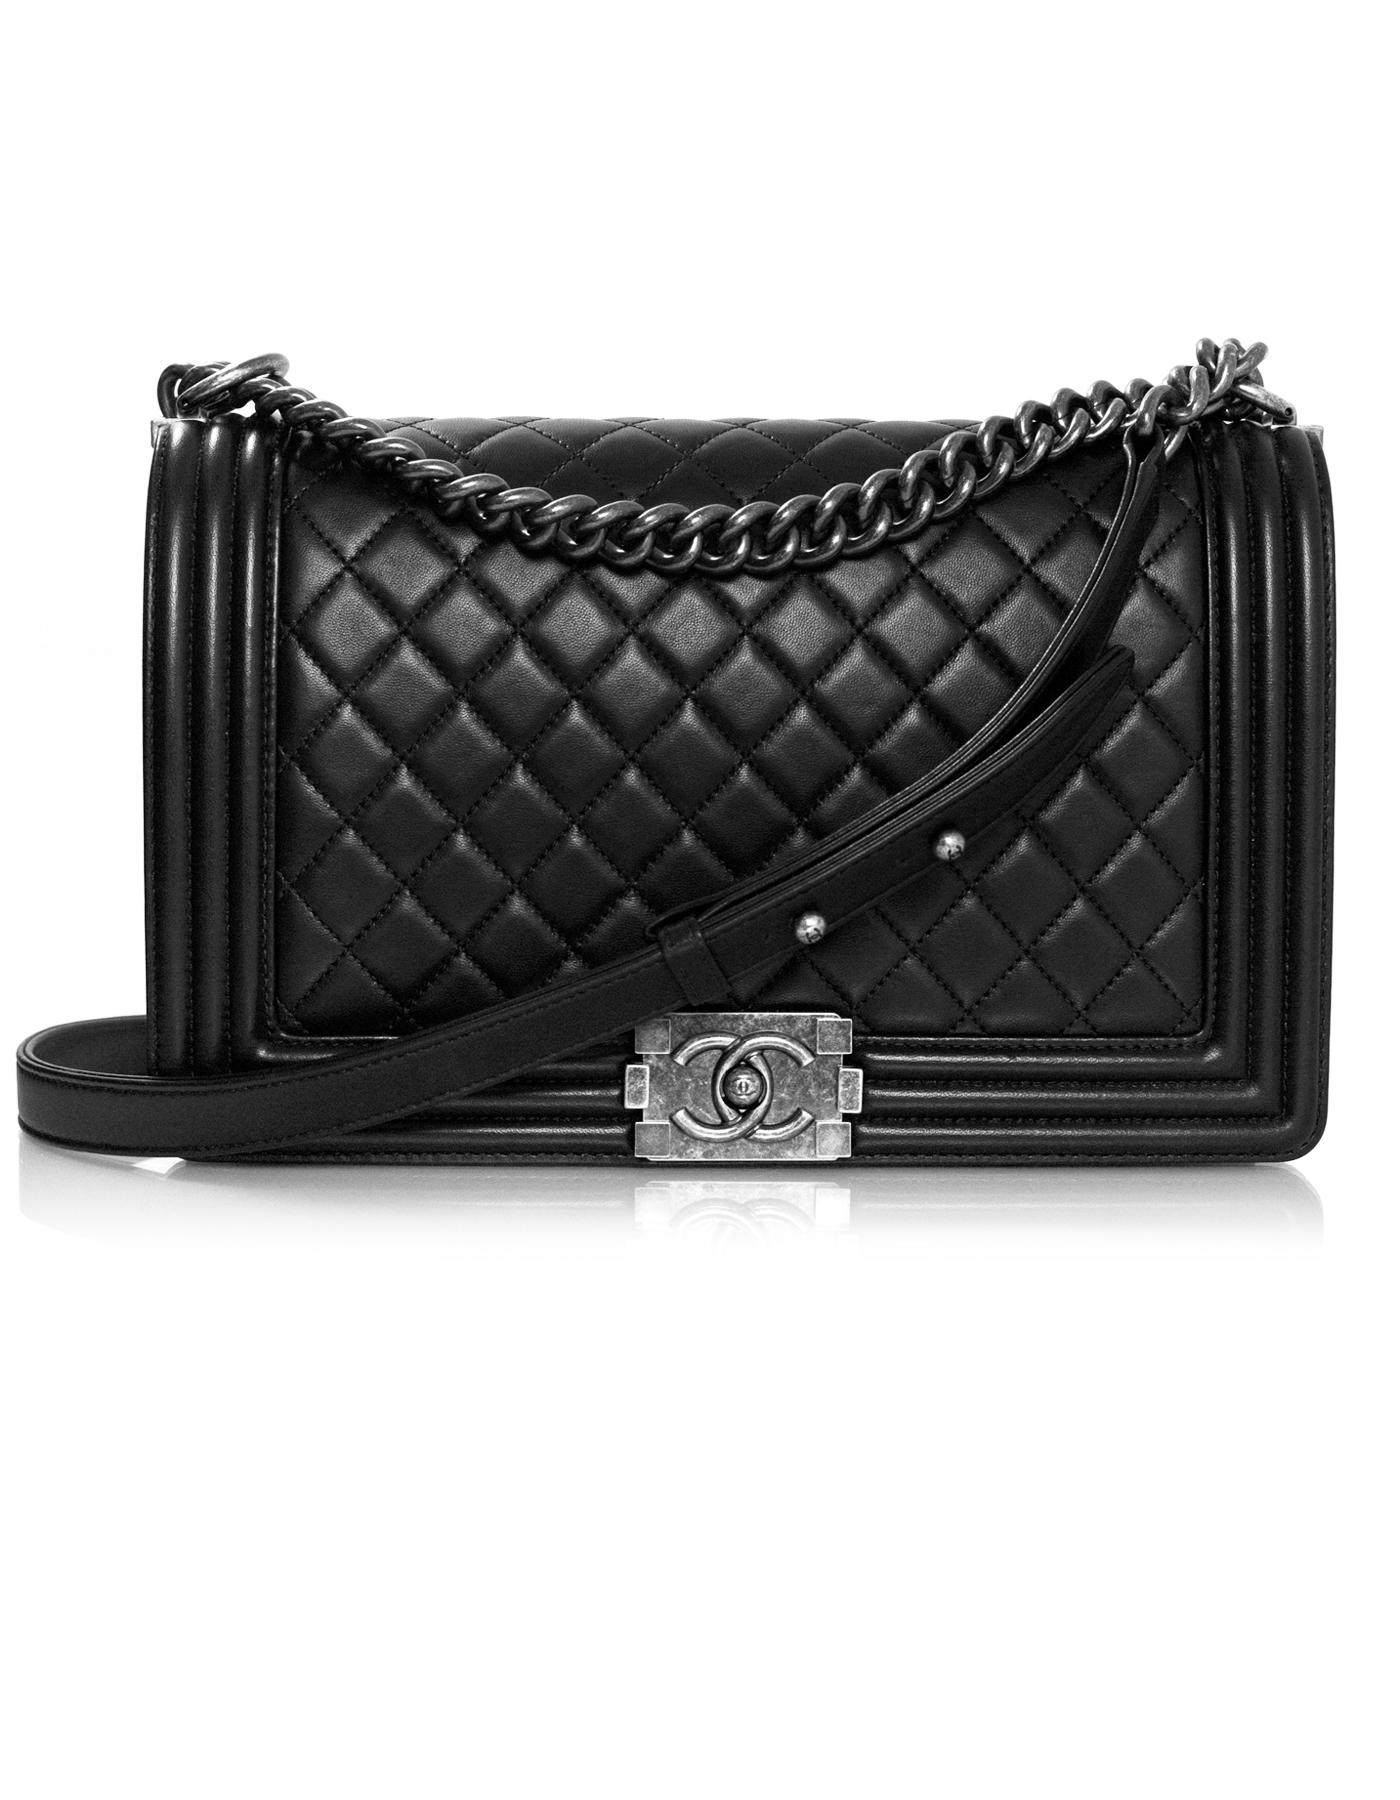 Black Chanel Bags Up To 70 Off At Tradesy